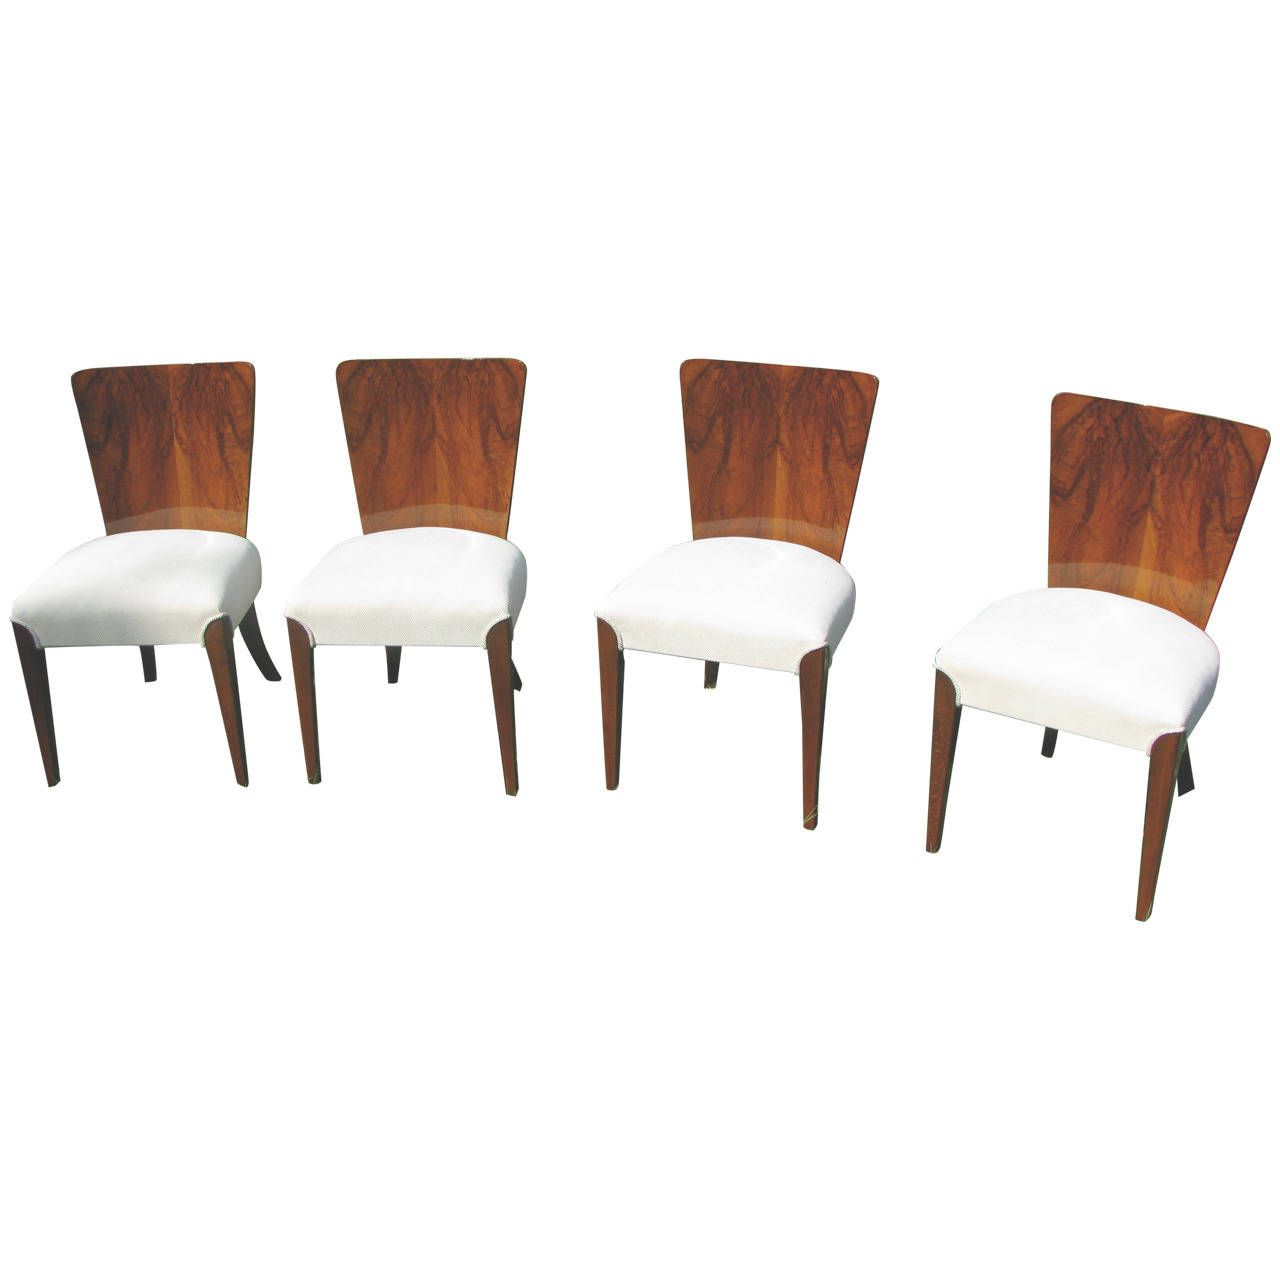 Modern Side Chairs For Living Room Art Deco Chairs Halabala H 214 Chairs Art Deco And Furniture